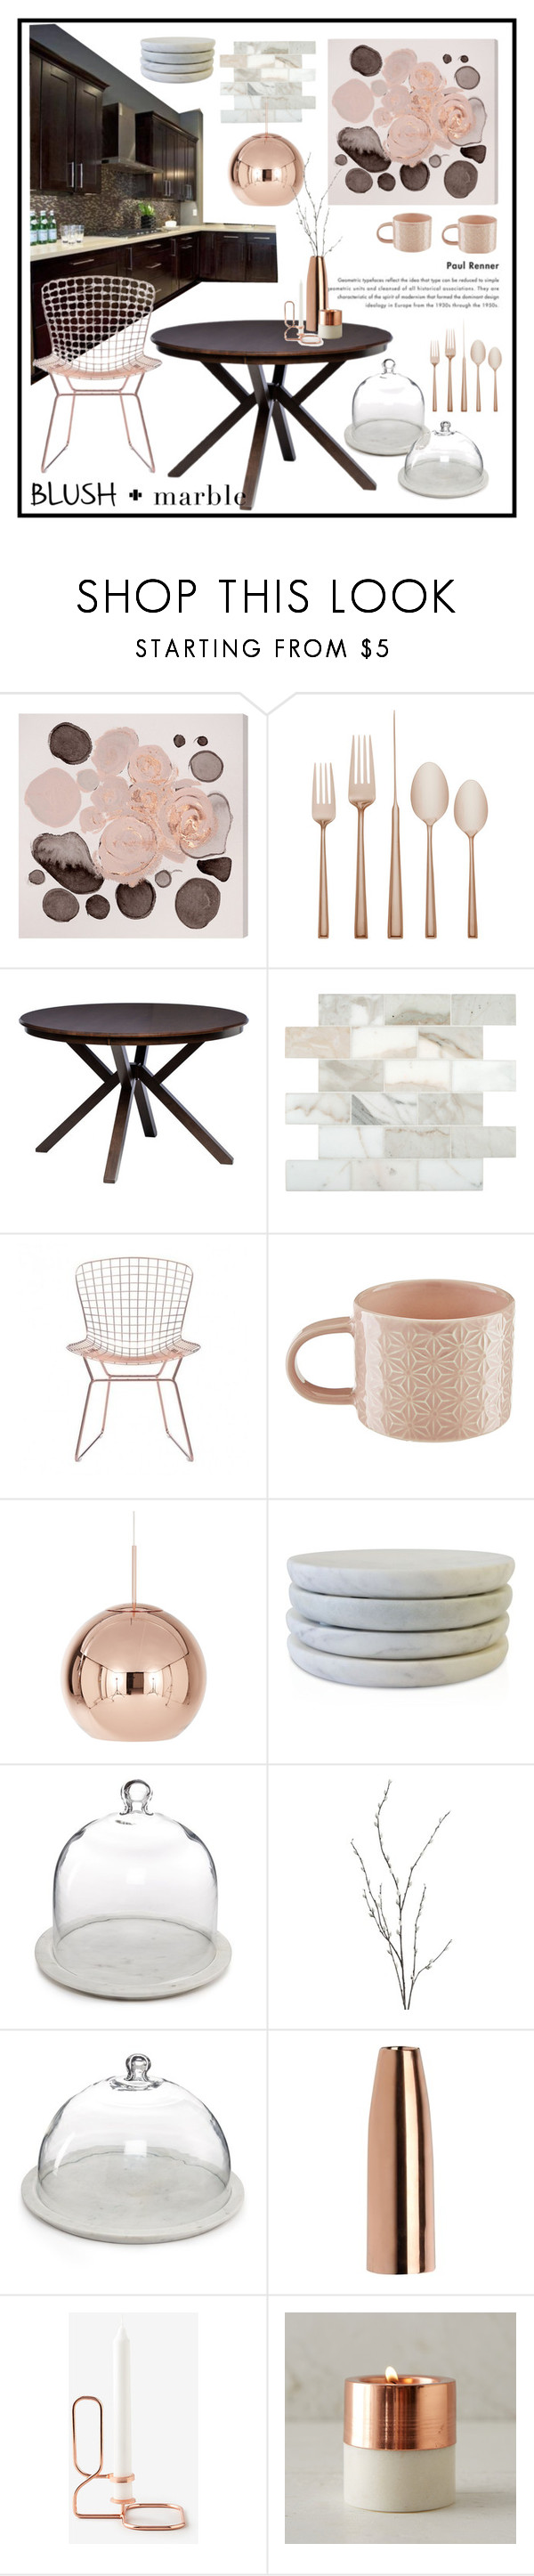 """""""blush+marble dining"""" by malgorzata-klamczynska ❤ liked on Polyvore featuring interior, interiors, interior design, home, home decor, interior decorating, Oliver Gal Artist Co., Kate Spade, I Love Living and Zuo"""